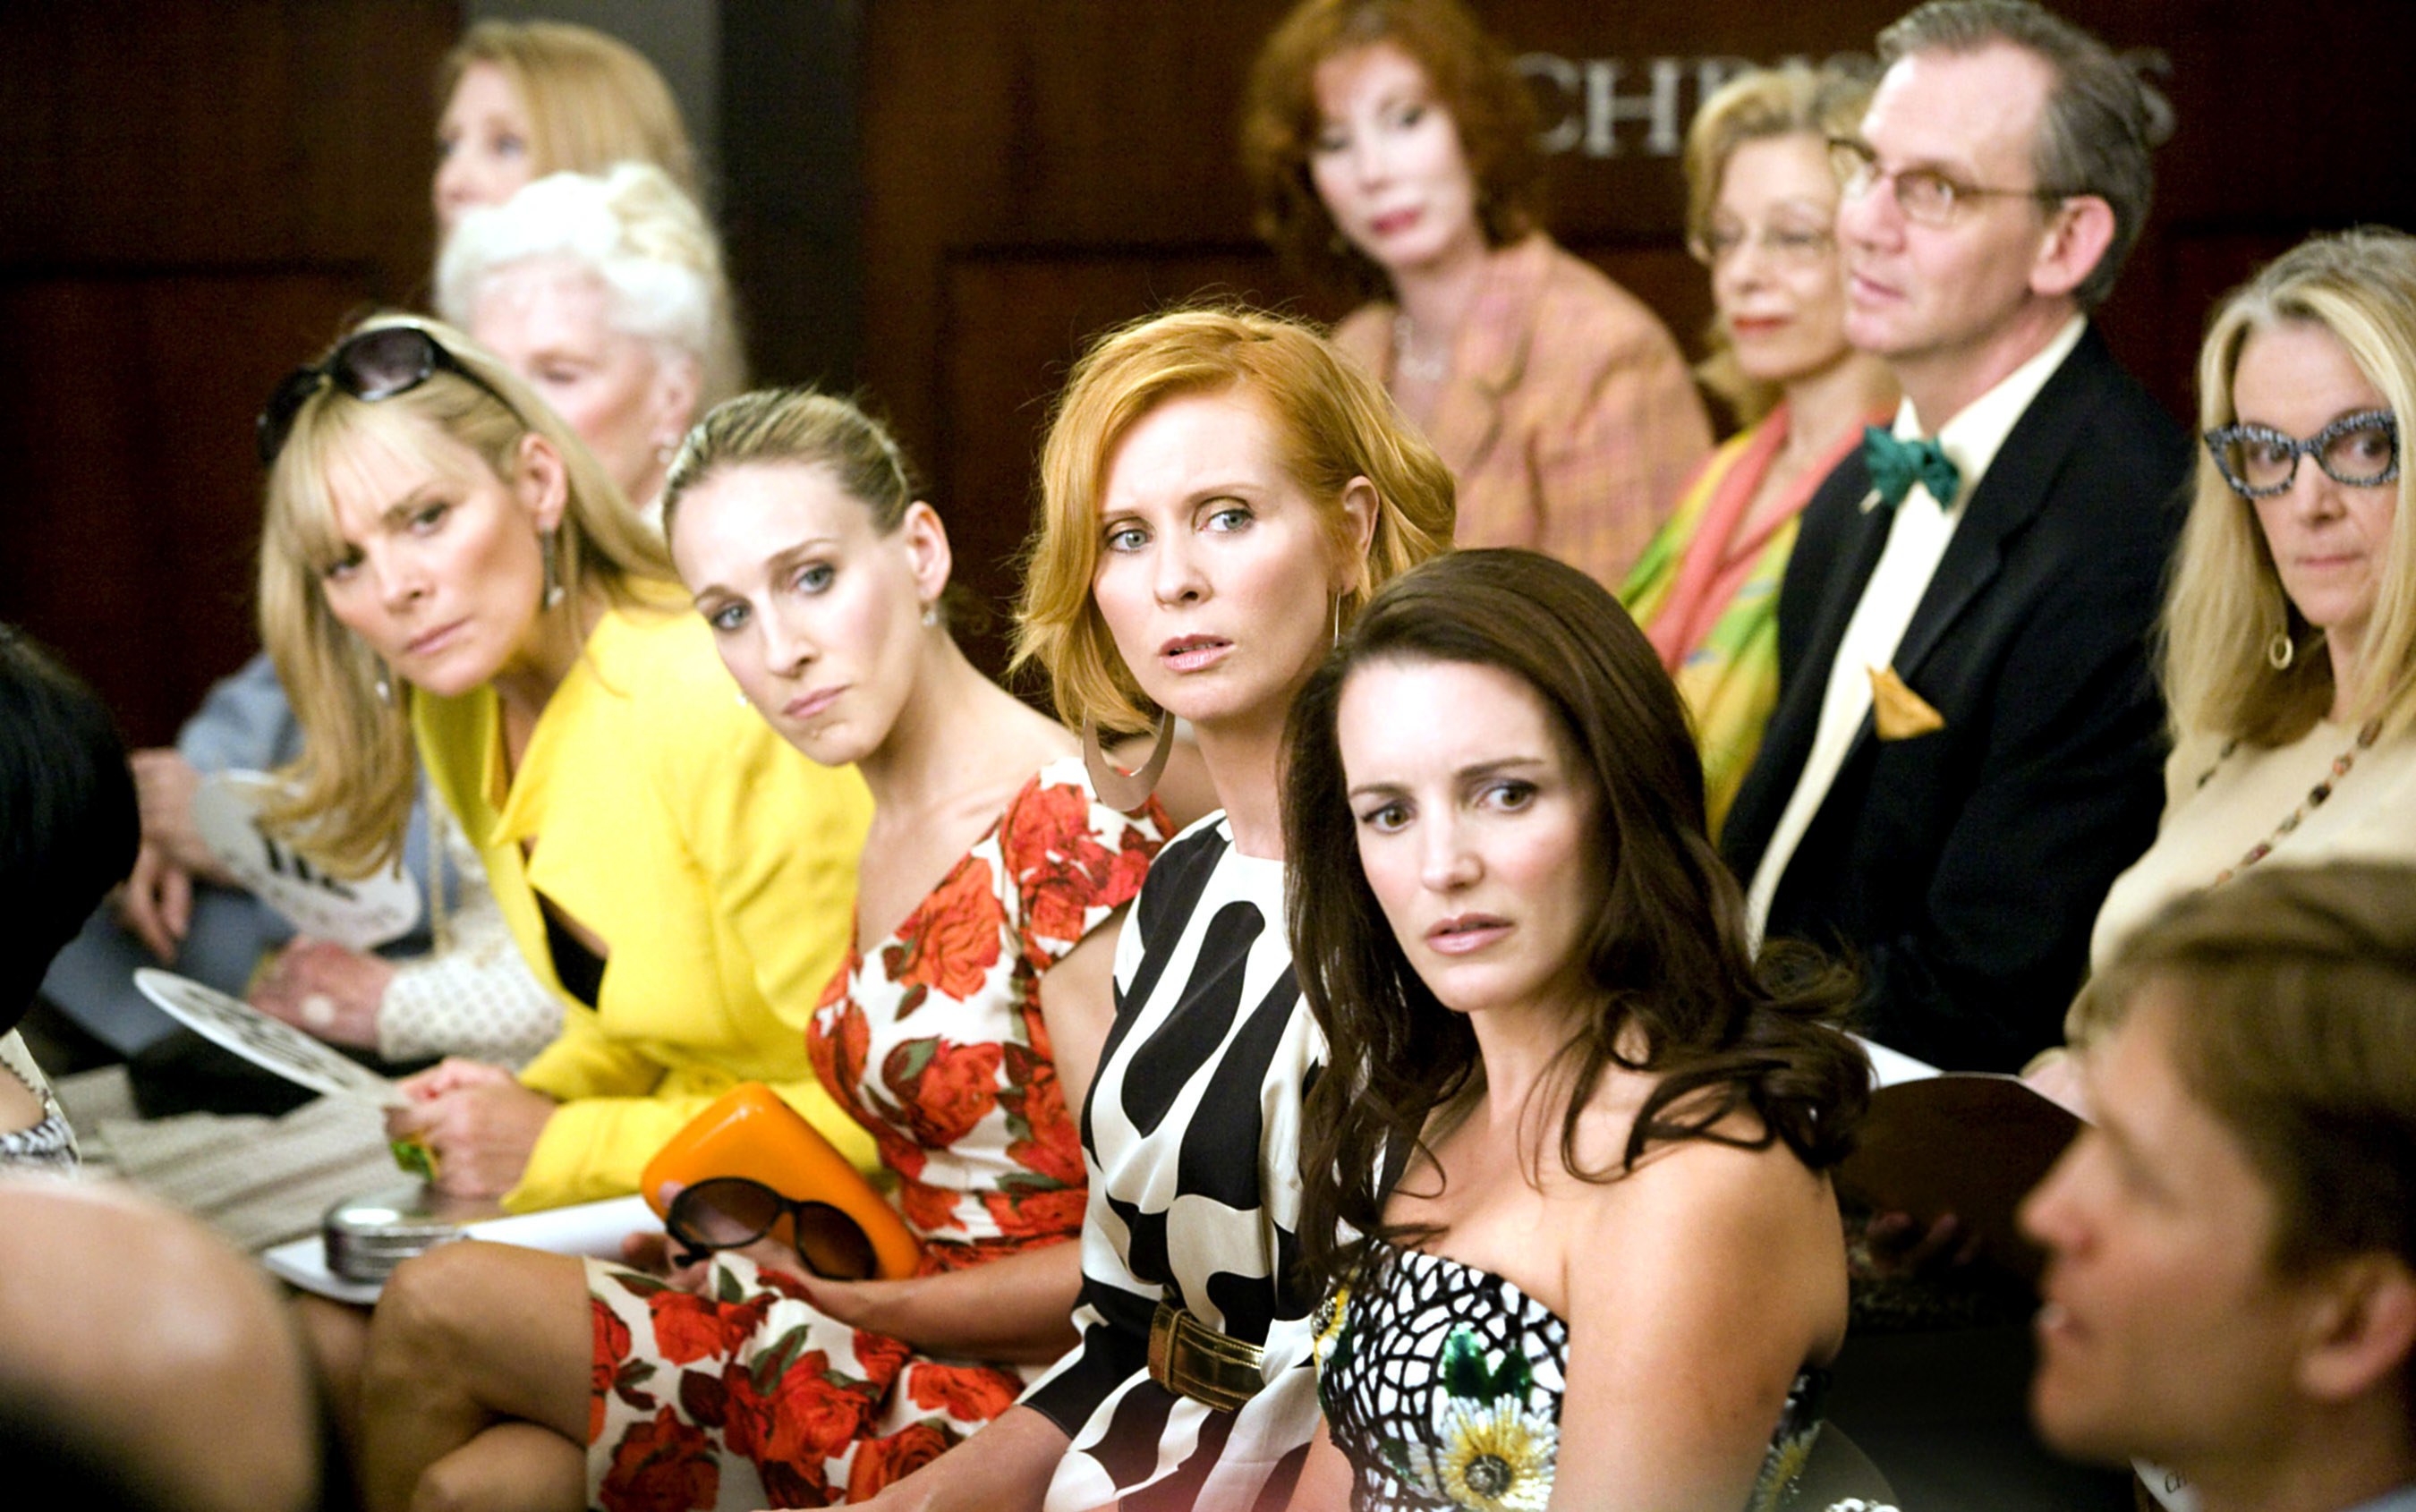 Samantha, Carrie, Miranda, and Charlotte at an auction